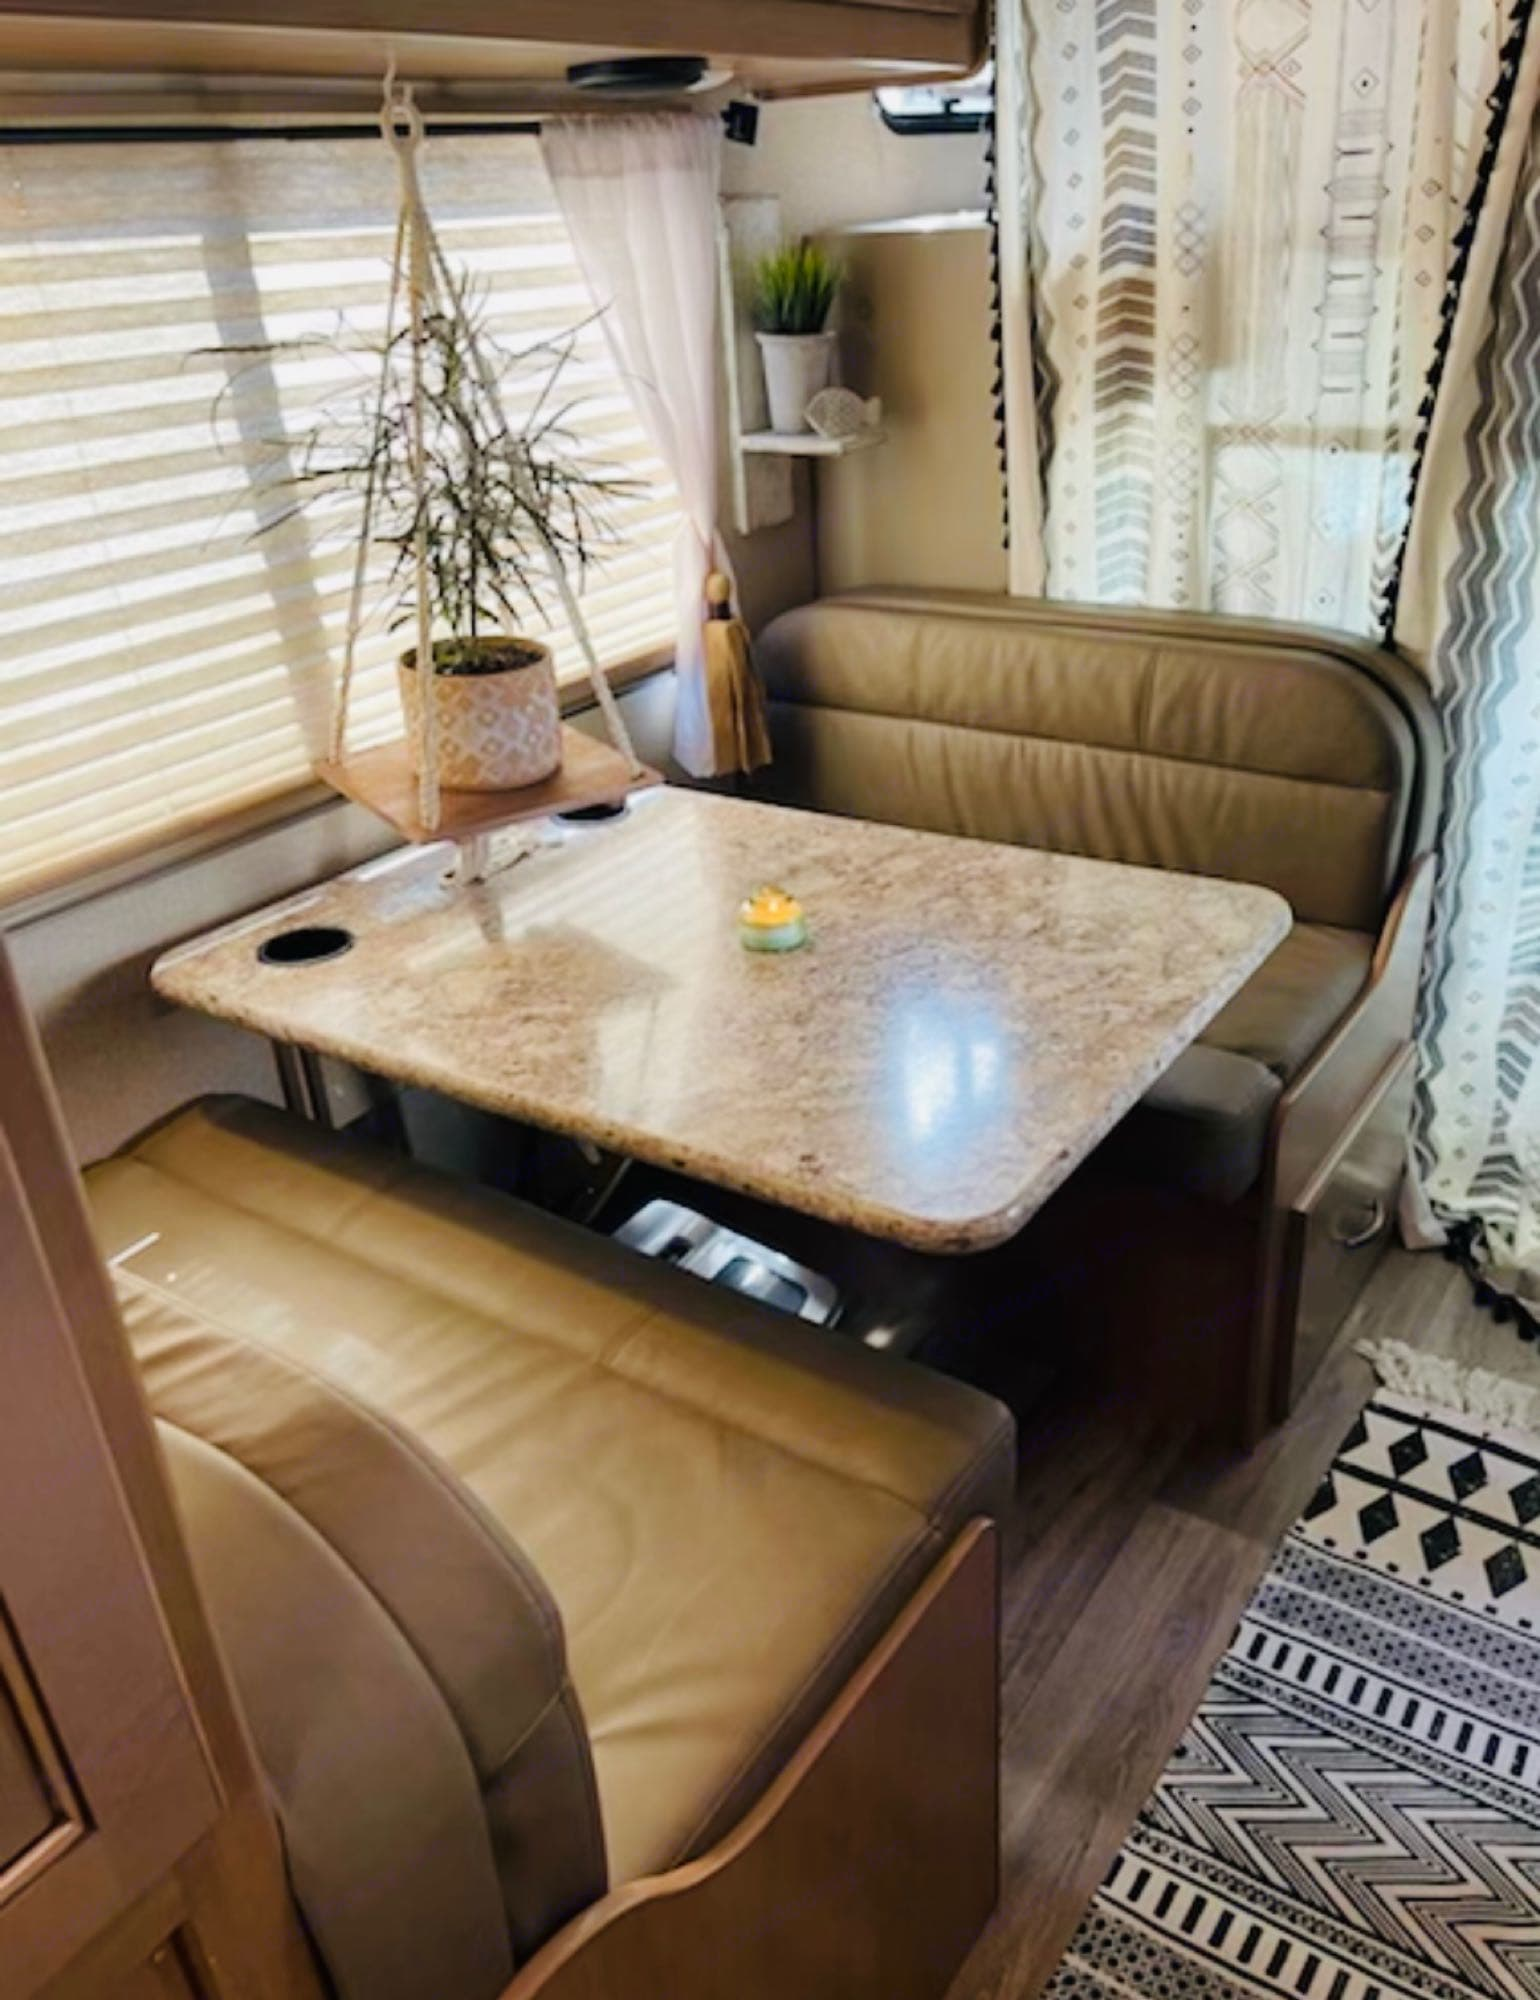 Leather Dining Booth w/ 2nd Bed Option.  Easy Peasy Conversion!. Thor Motor Coach Four Winds 23B 2019